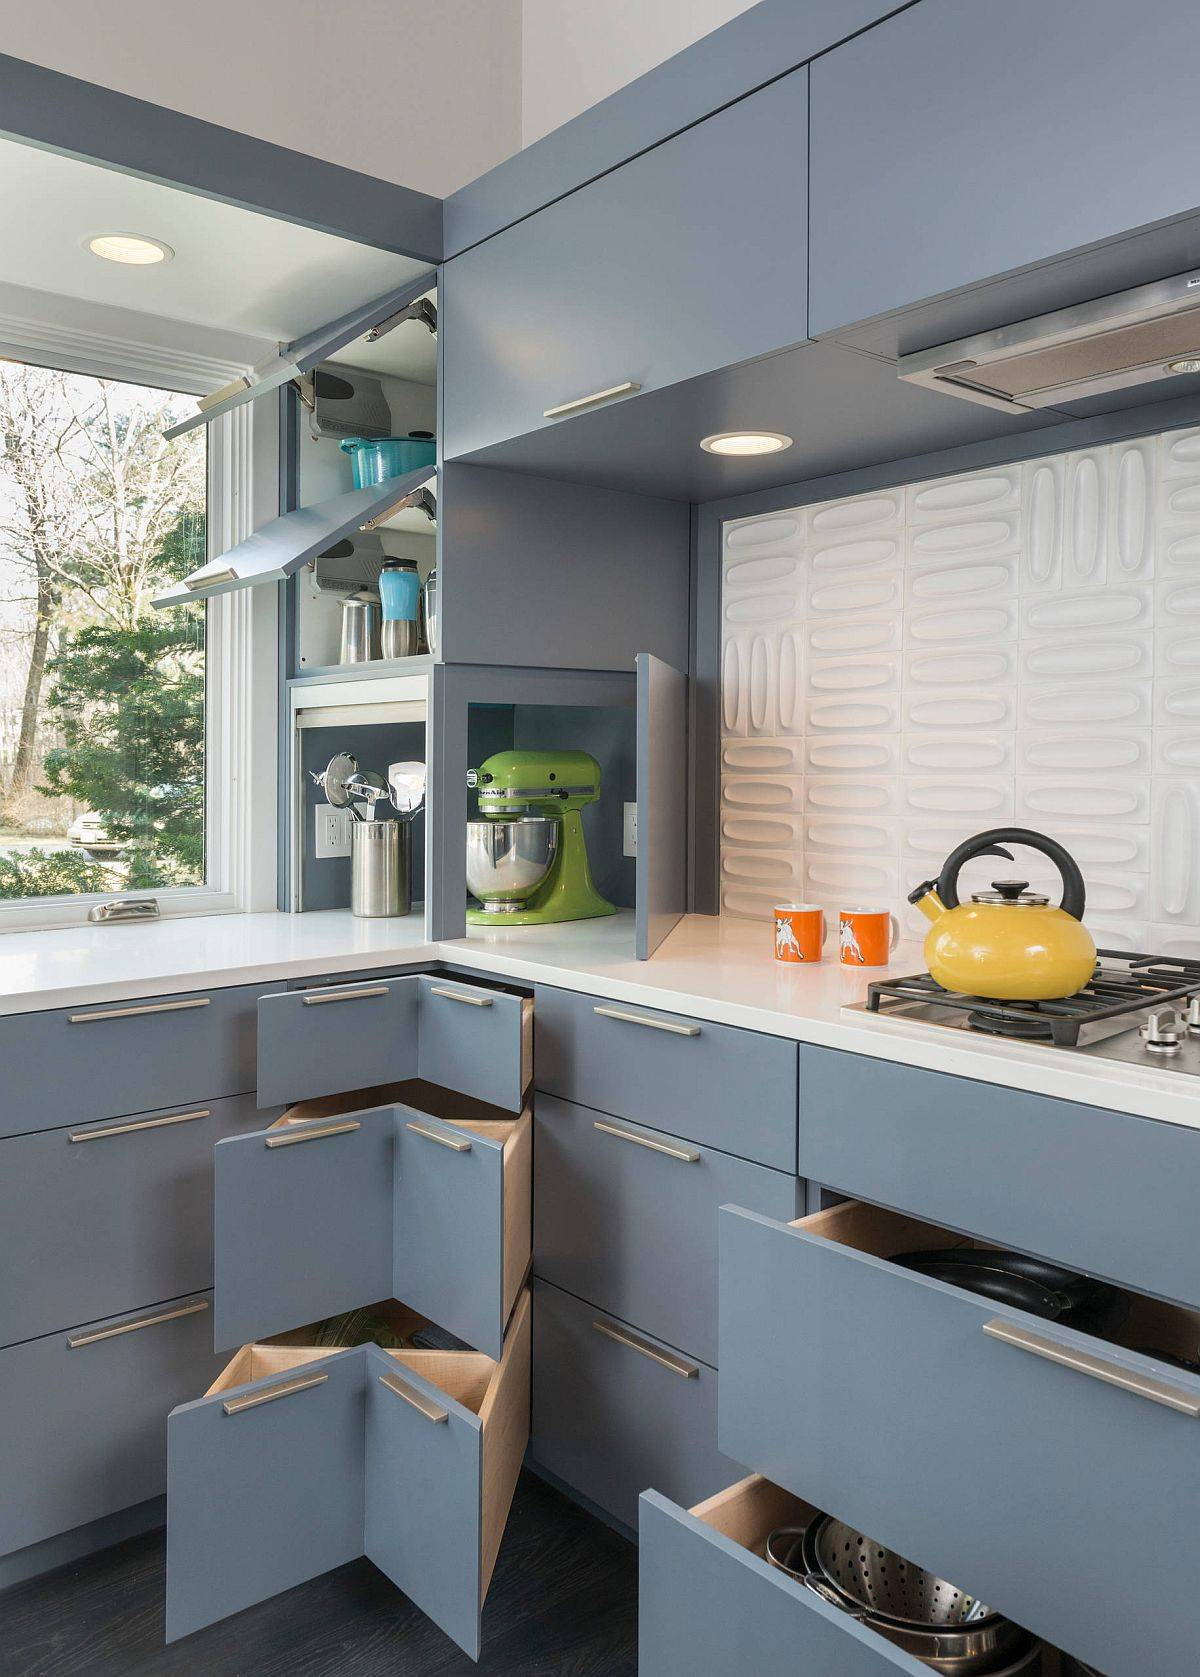 Gray corner cabinets and custom units offer a variety of delightful storage options in this kitchen